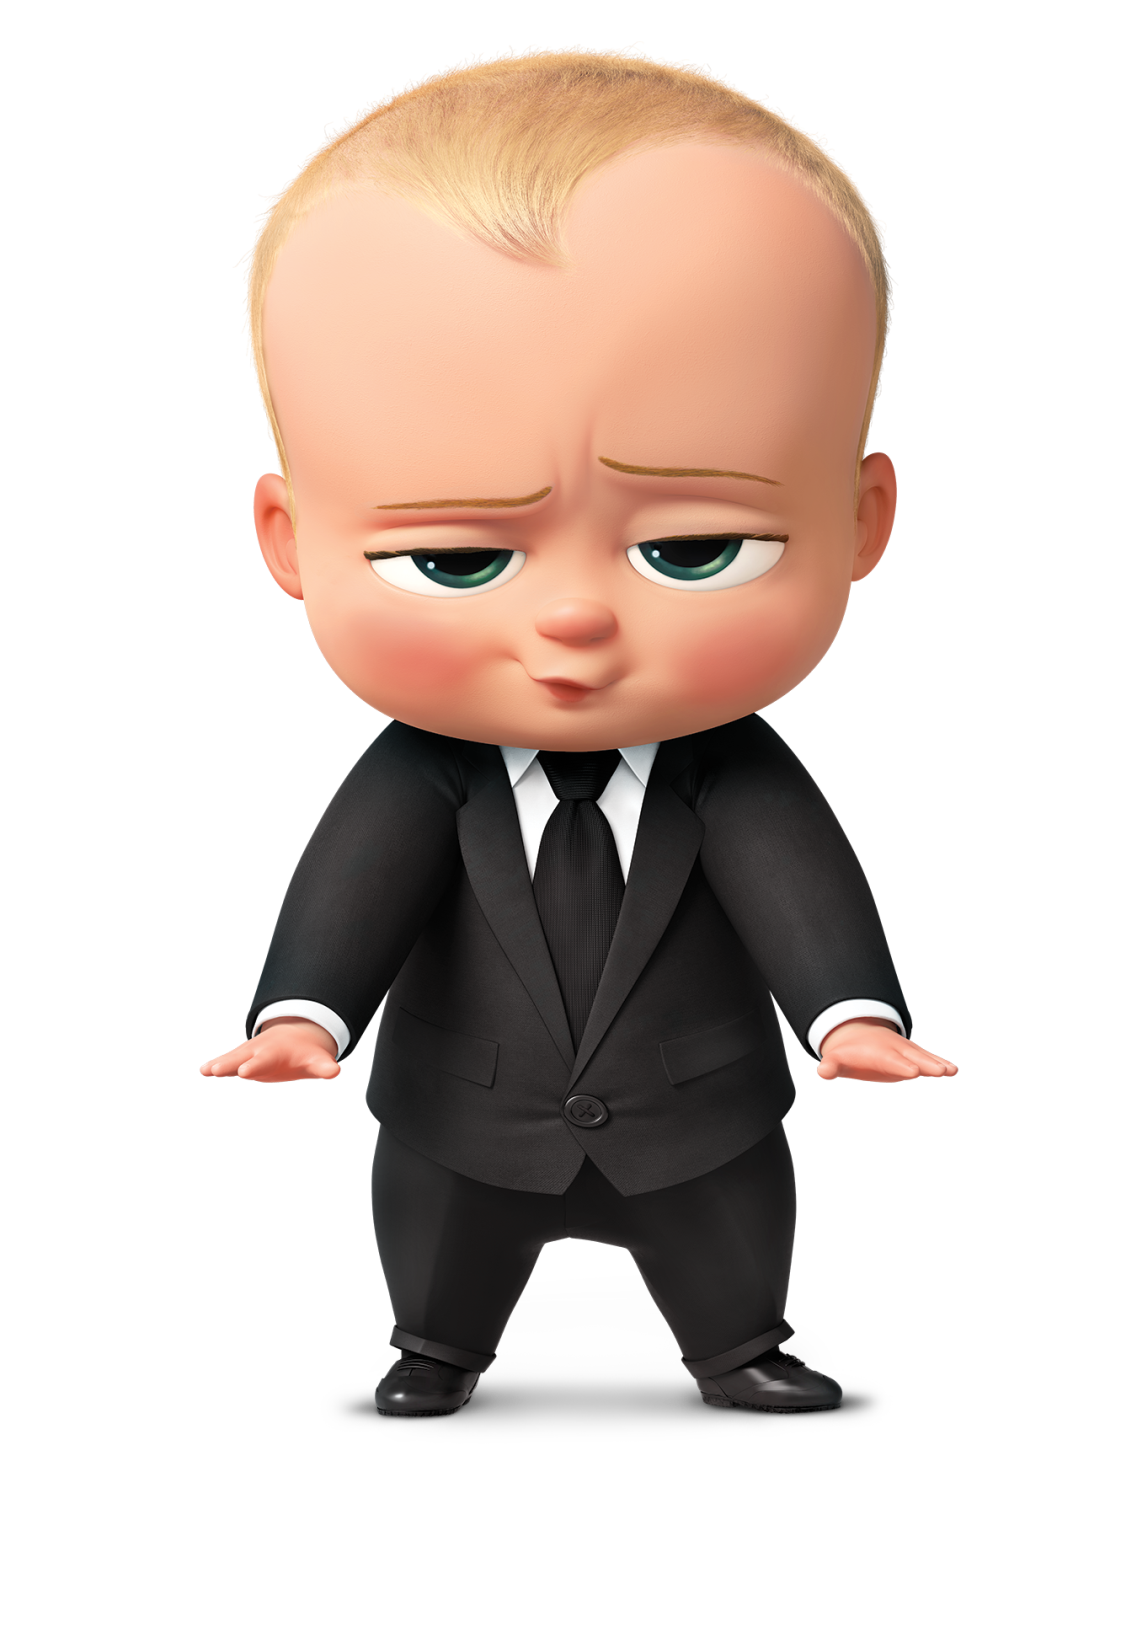 The boss baby png. Diaper child infant transprent